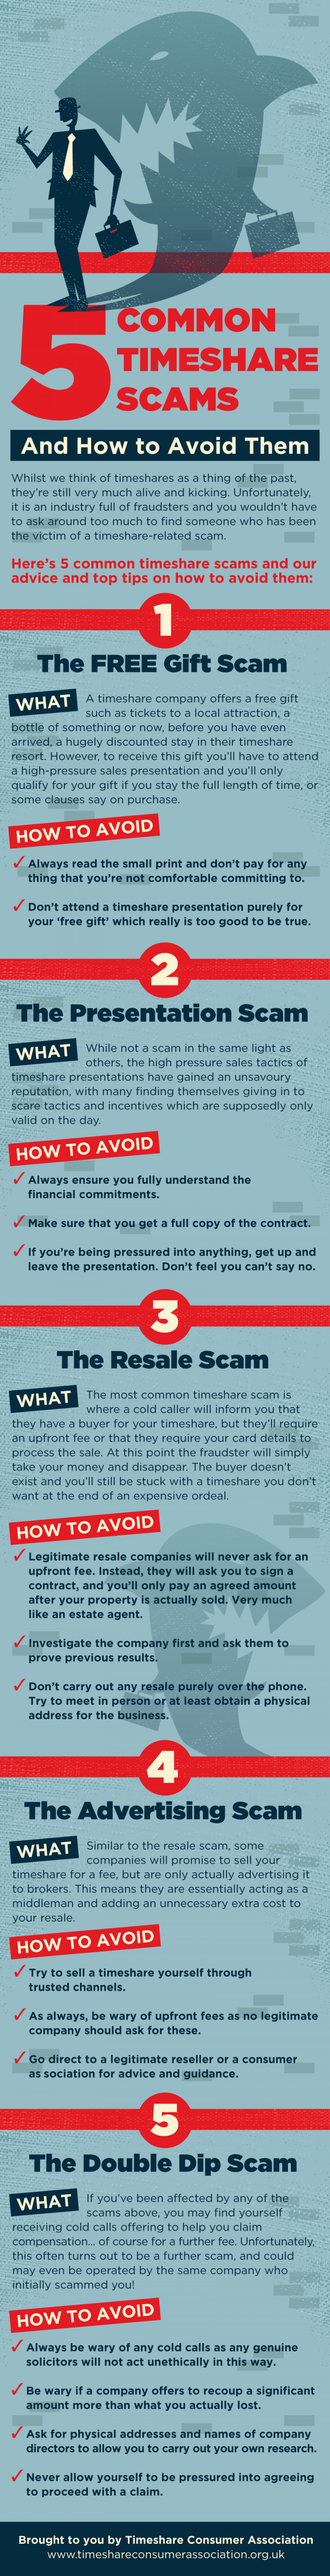 5 Common Timeshare Scams & How To Avoid Them Infographic